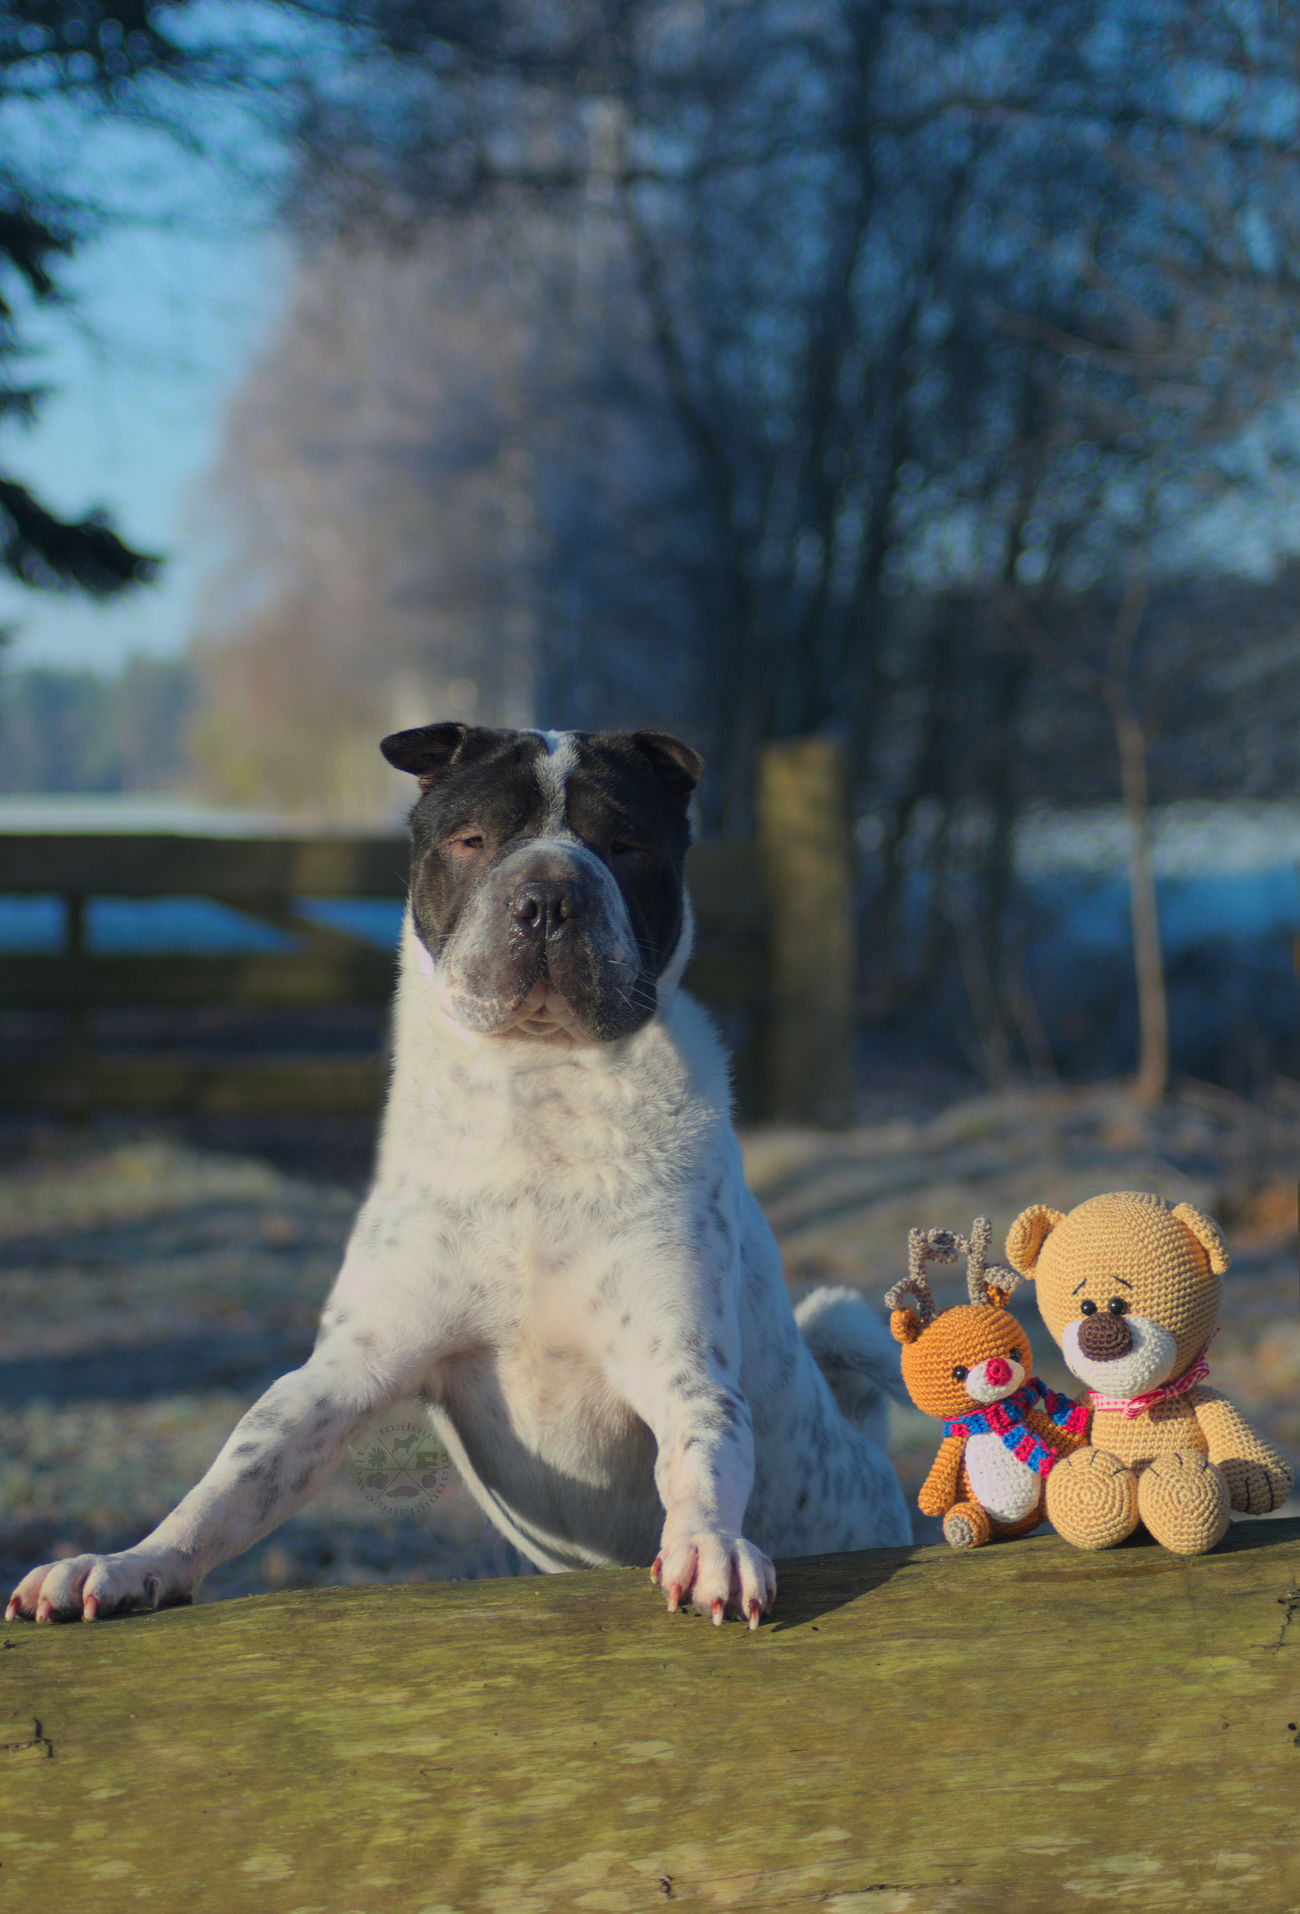 One Animal No People Animal Themes Outdoors Animals In The Wild Tree Pets Day Nature Natur Bergen Celle Nikon Wald Fluss Beauty In Nature Snow Hund Dog Photography Hundefotografie Dog